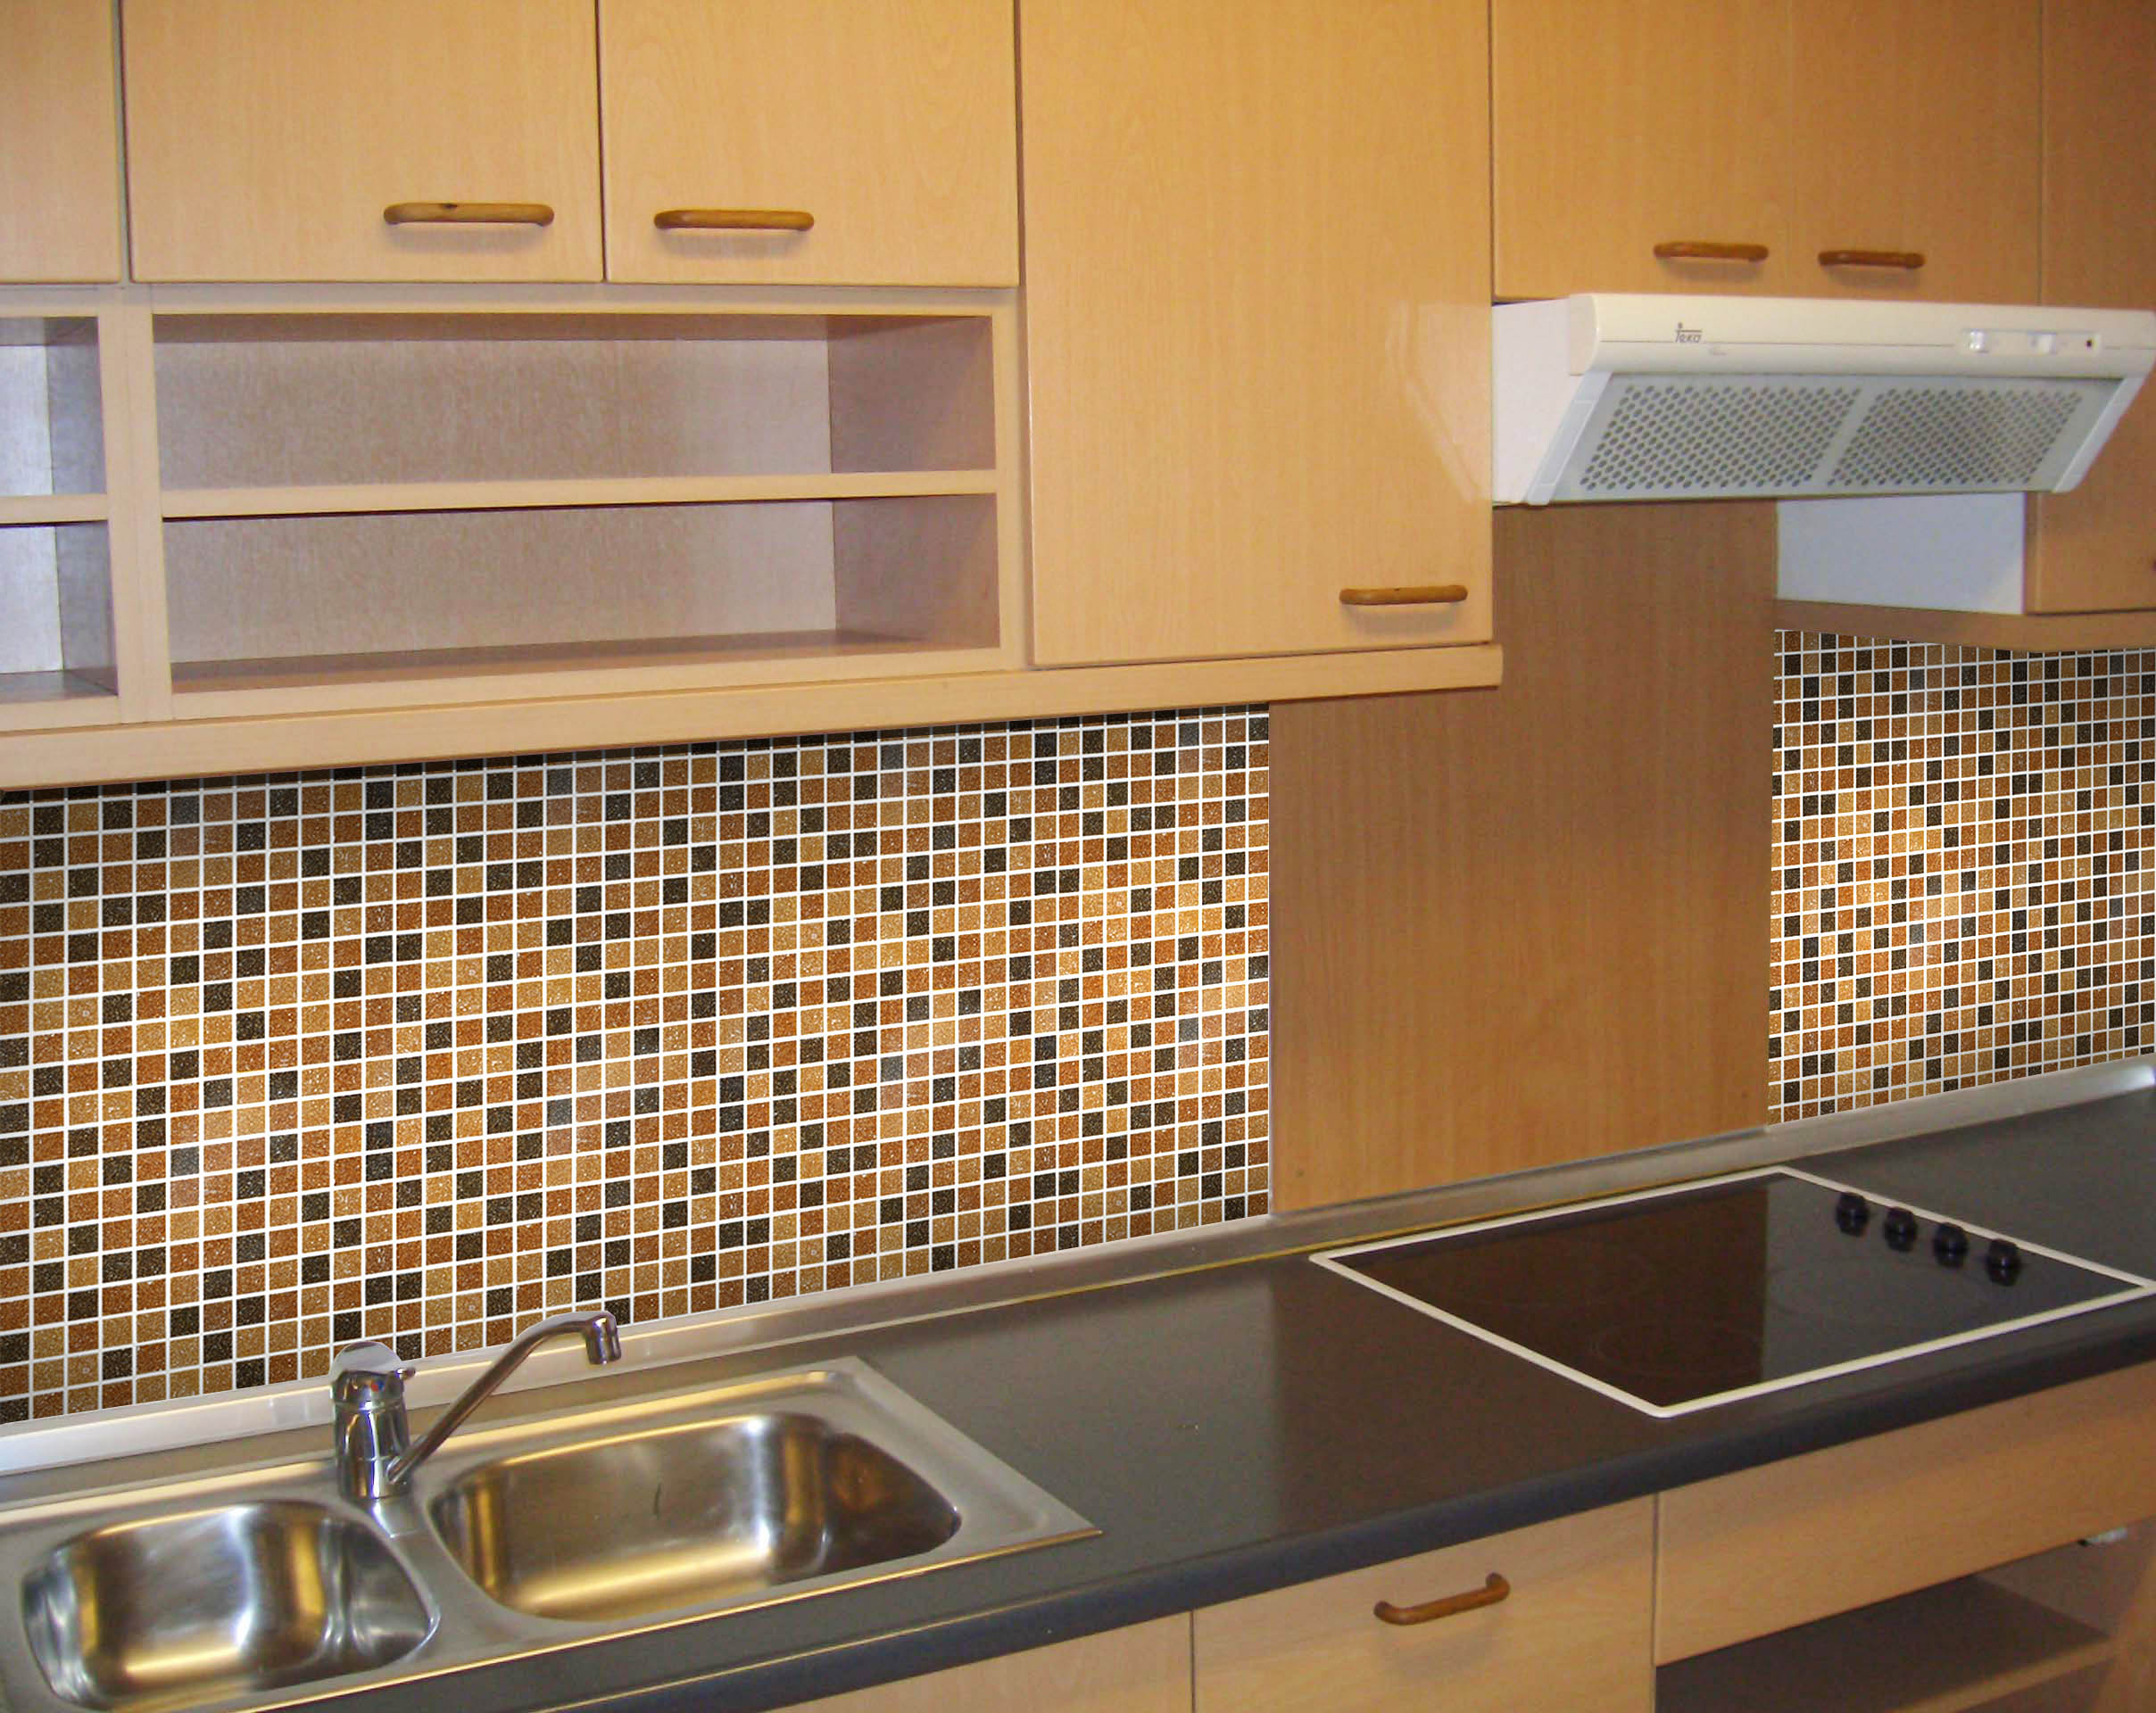 Pattren Small Tiles On Mosaic Ideas For Kitchen (Image 9 of 10)